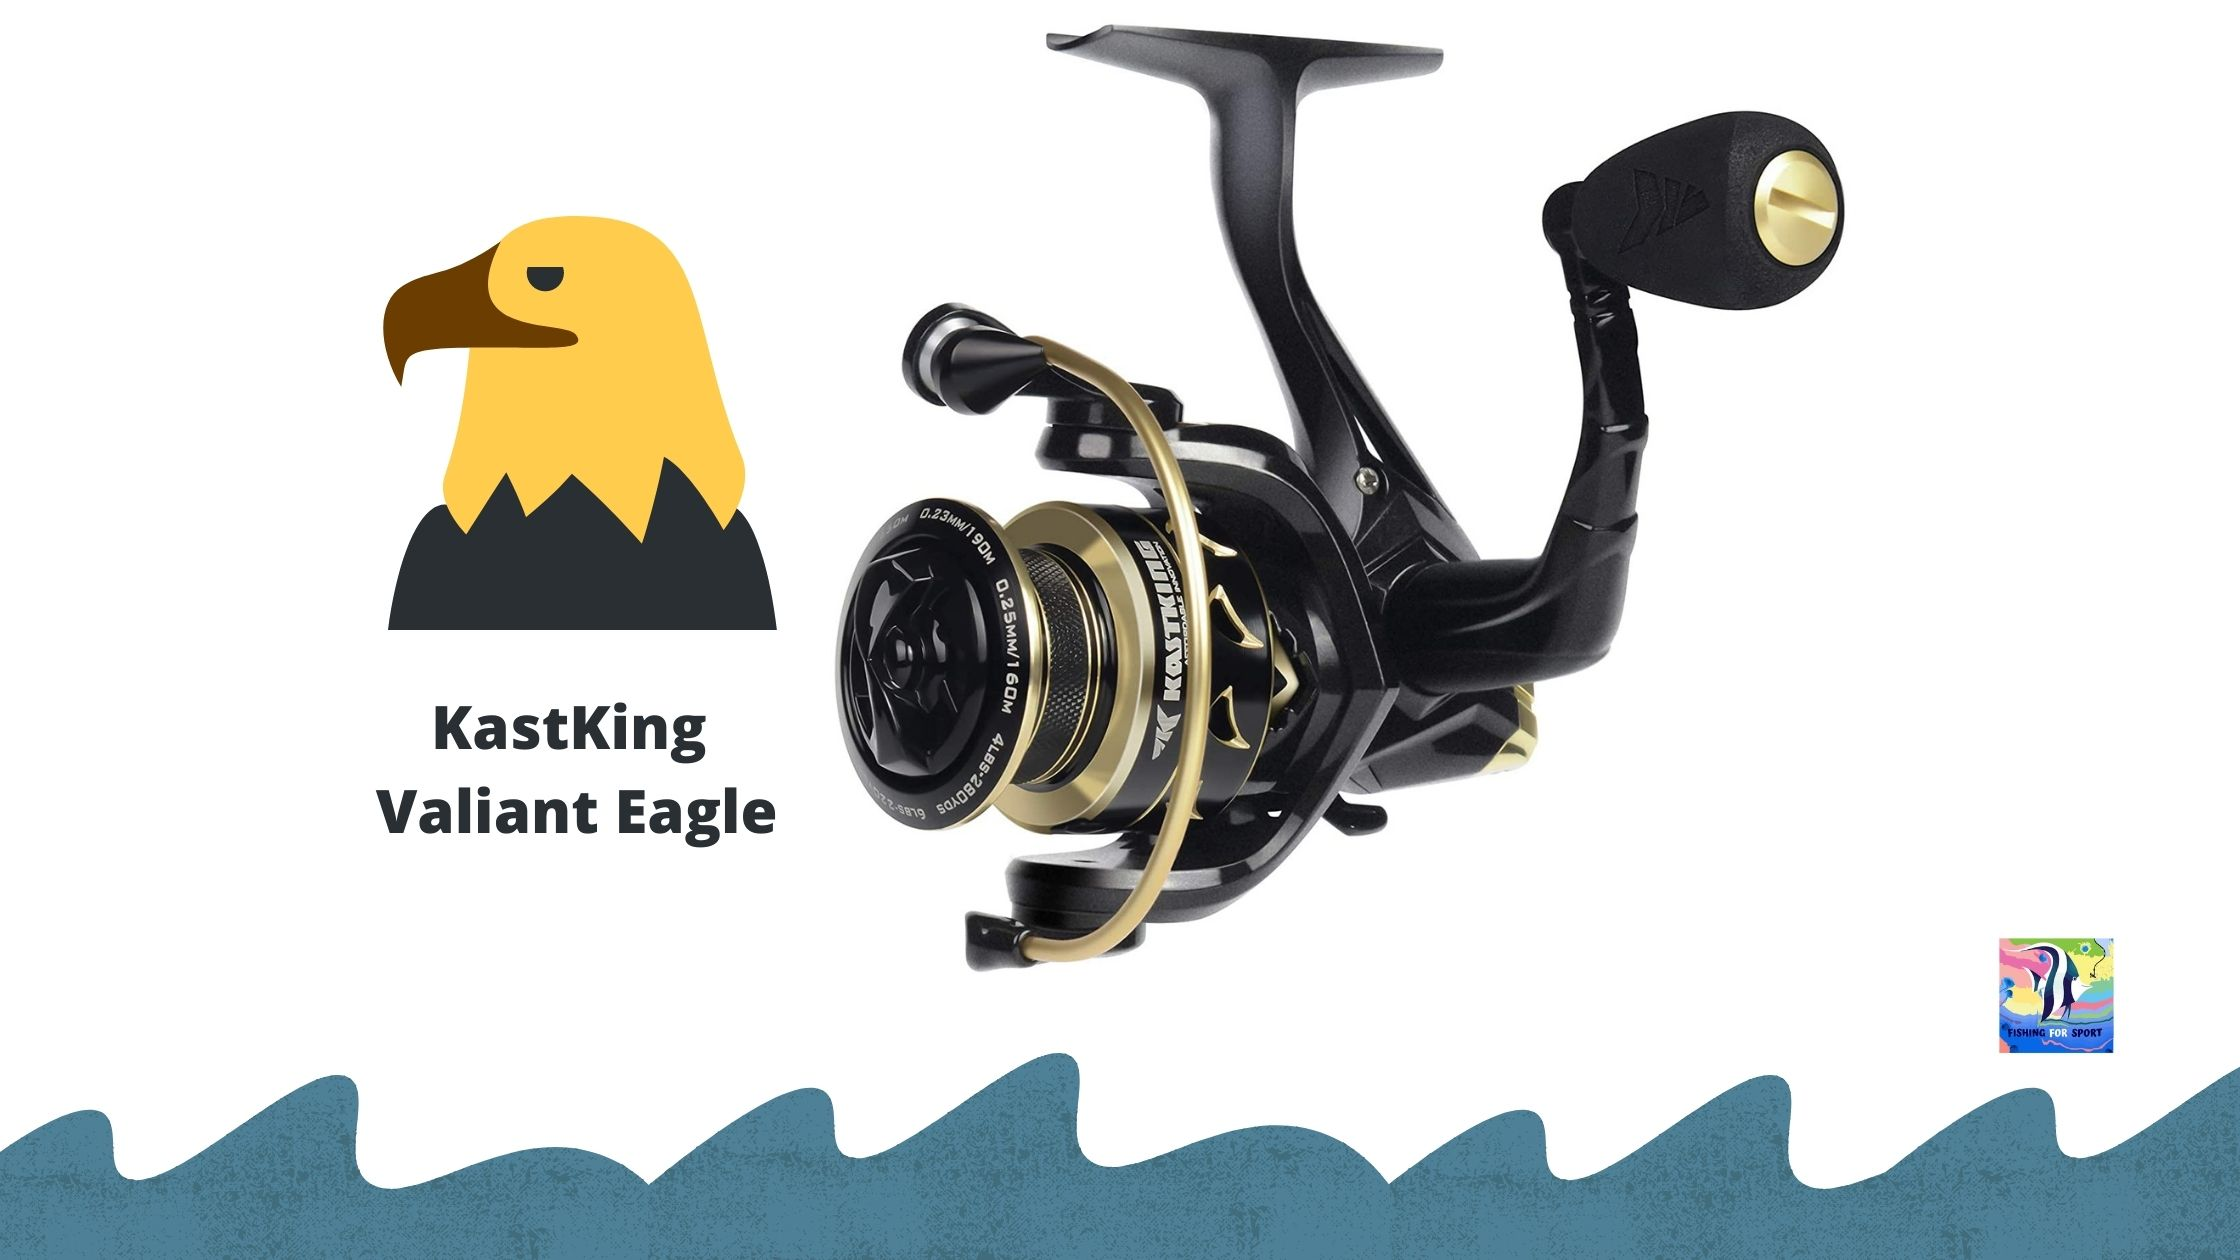 KastKing Valiant Eagle Review by Fishingforsport.com